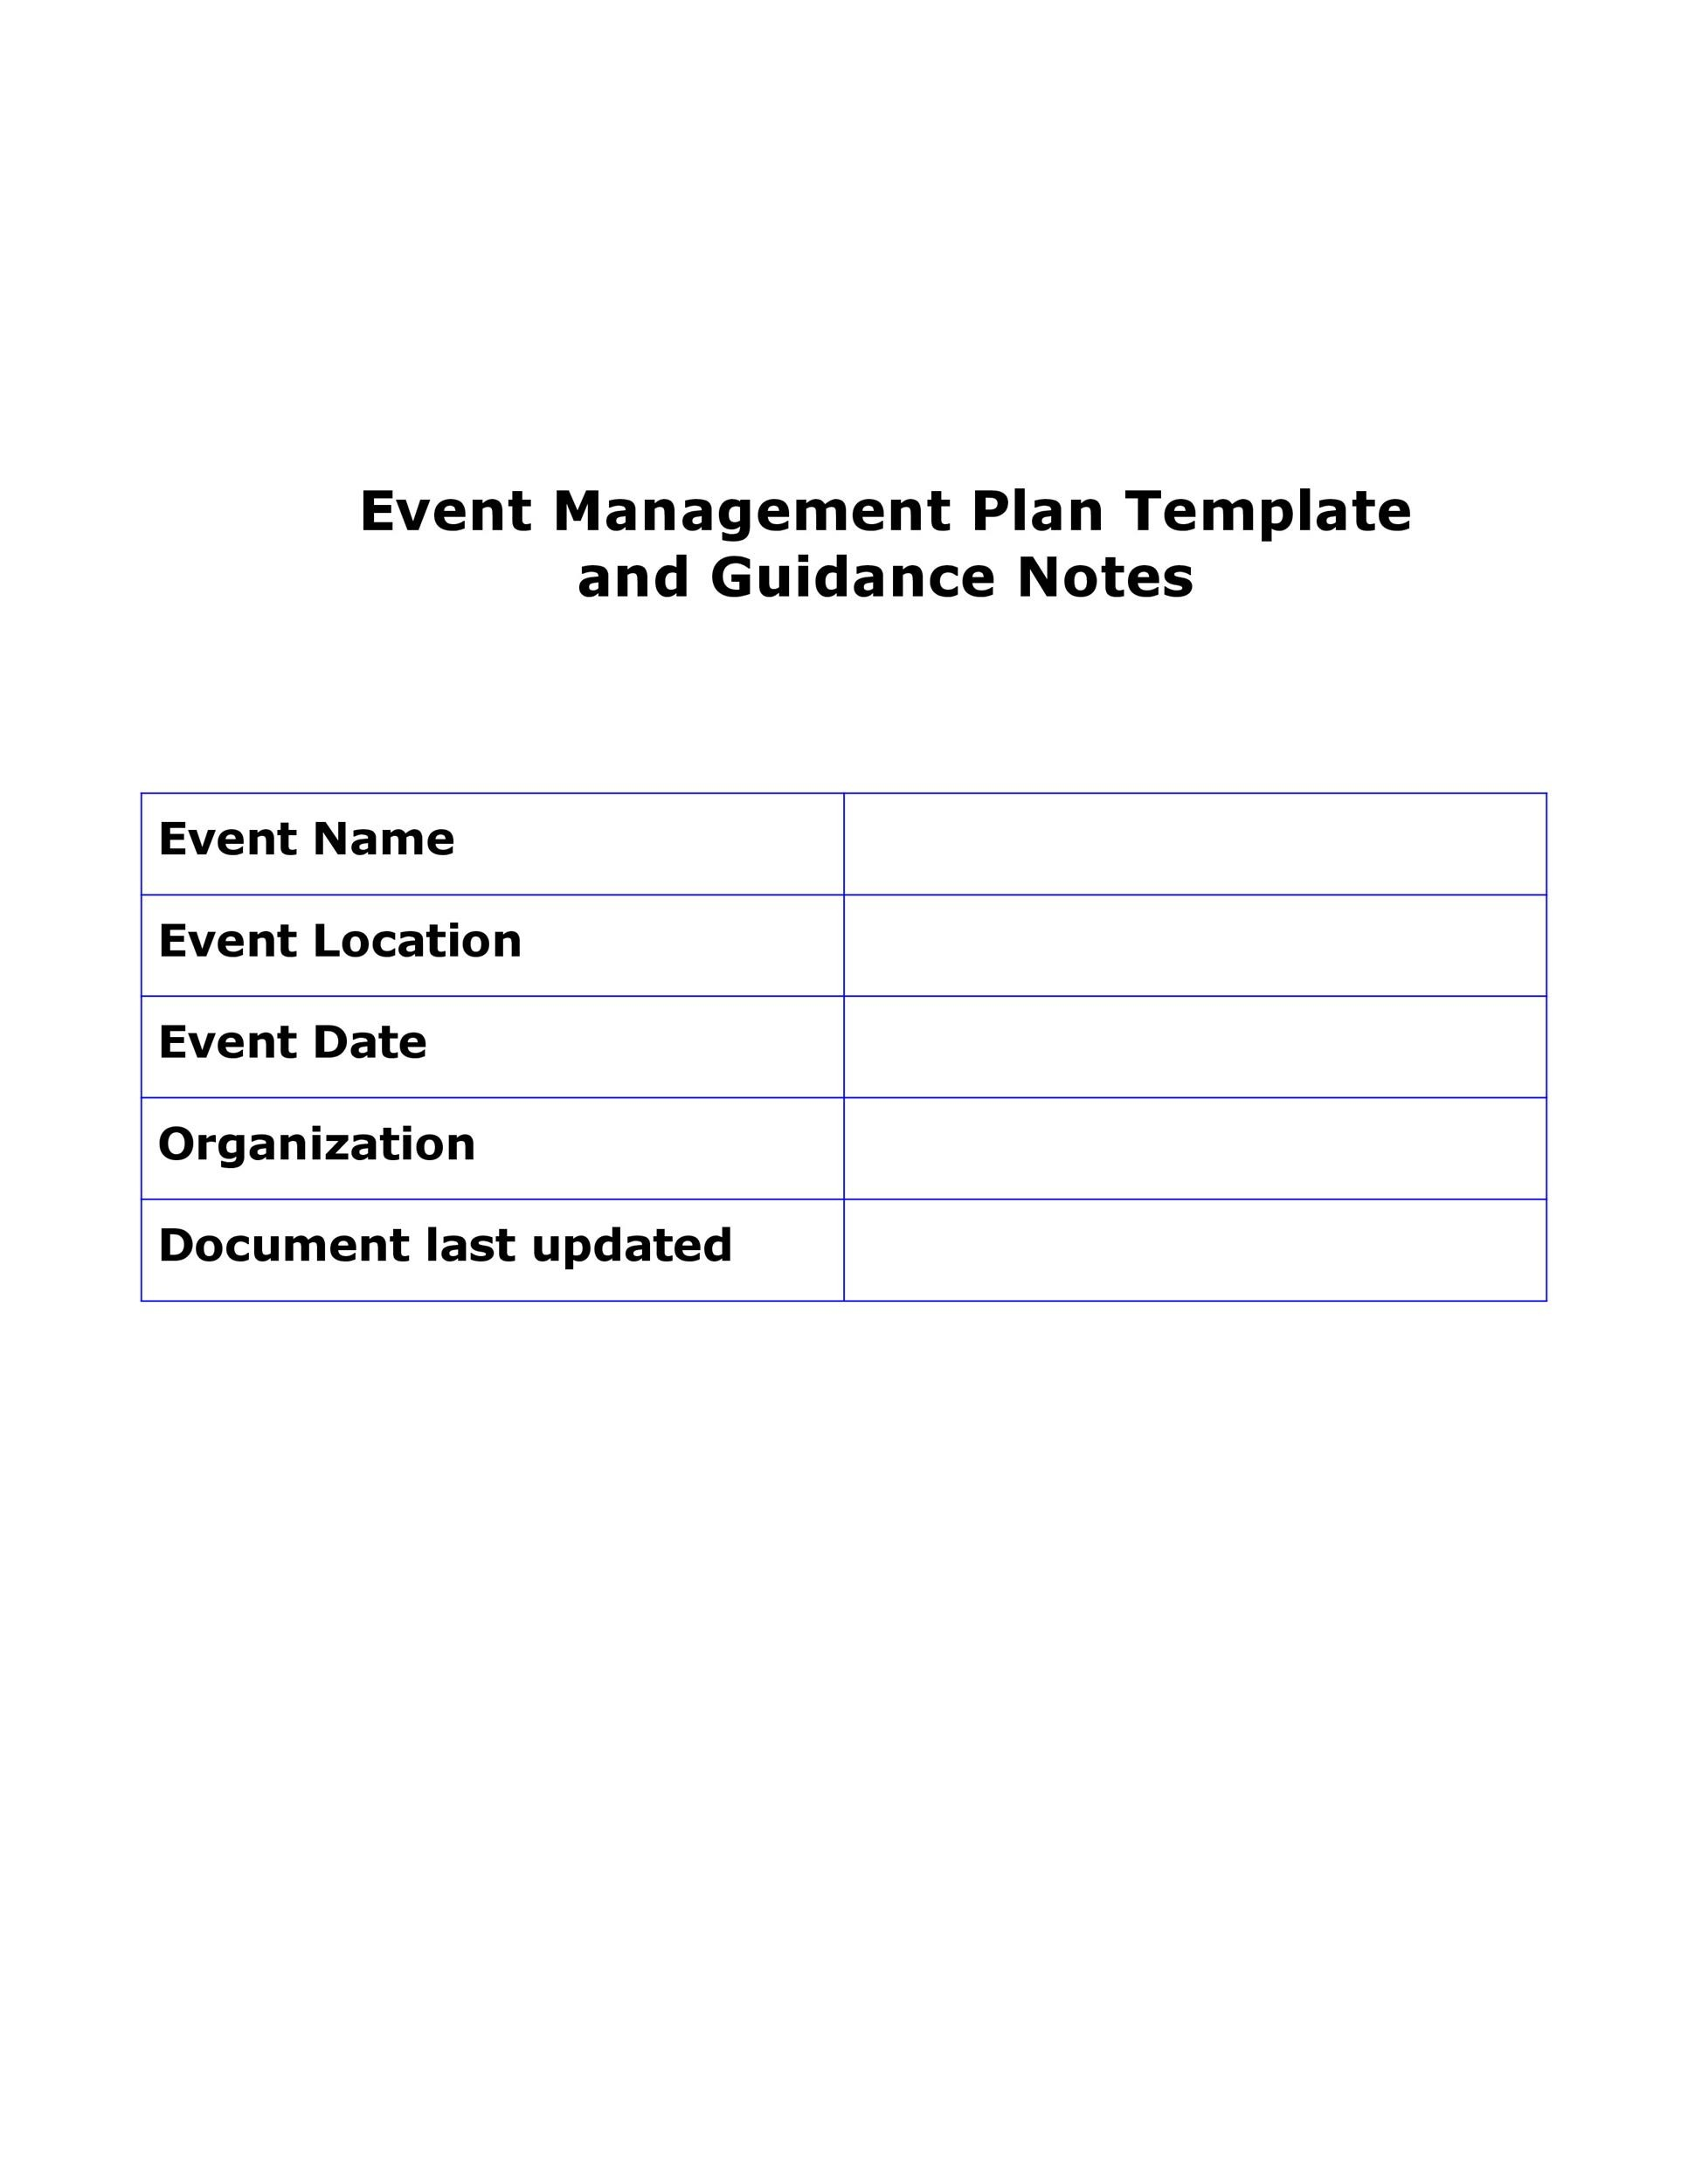 50 Professional Event Planning Checklist Templates ᐅ